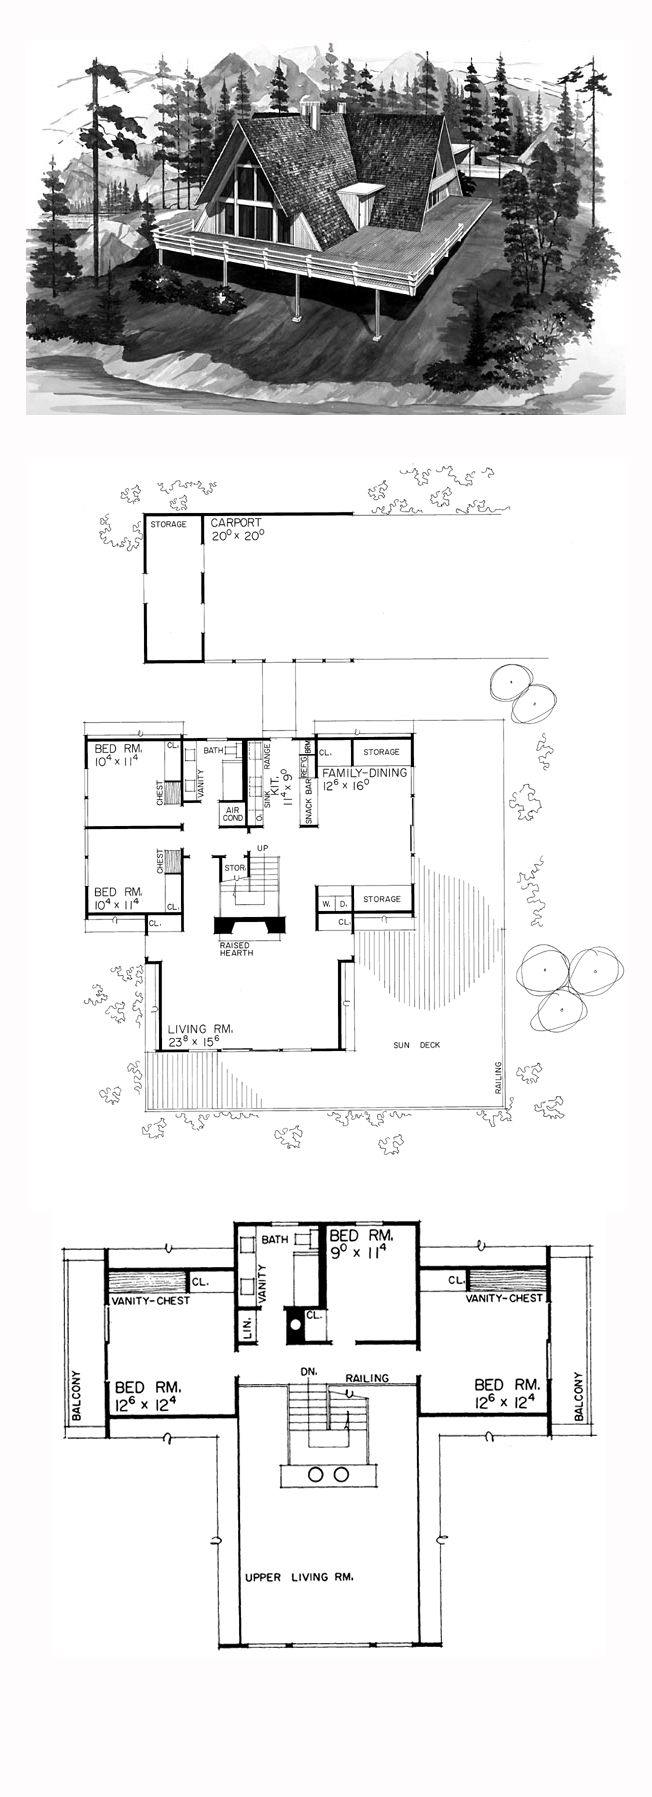 A Frame Style House Plan 90233 With 5 Bed 3 Bath 2 Car Garage A Frame House Plans A Frame House House Plans